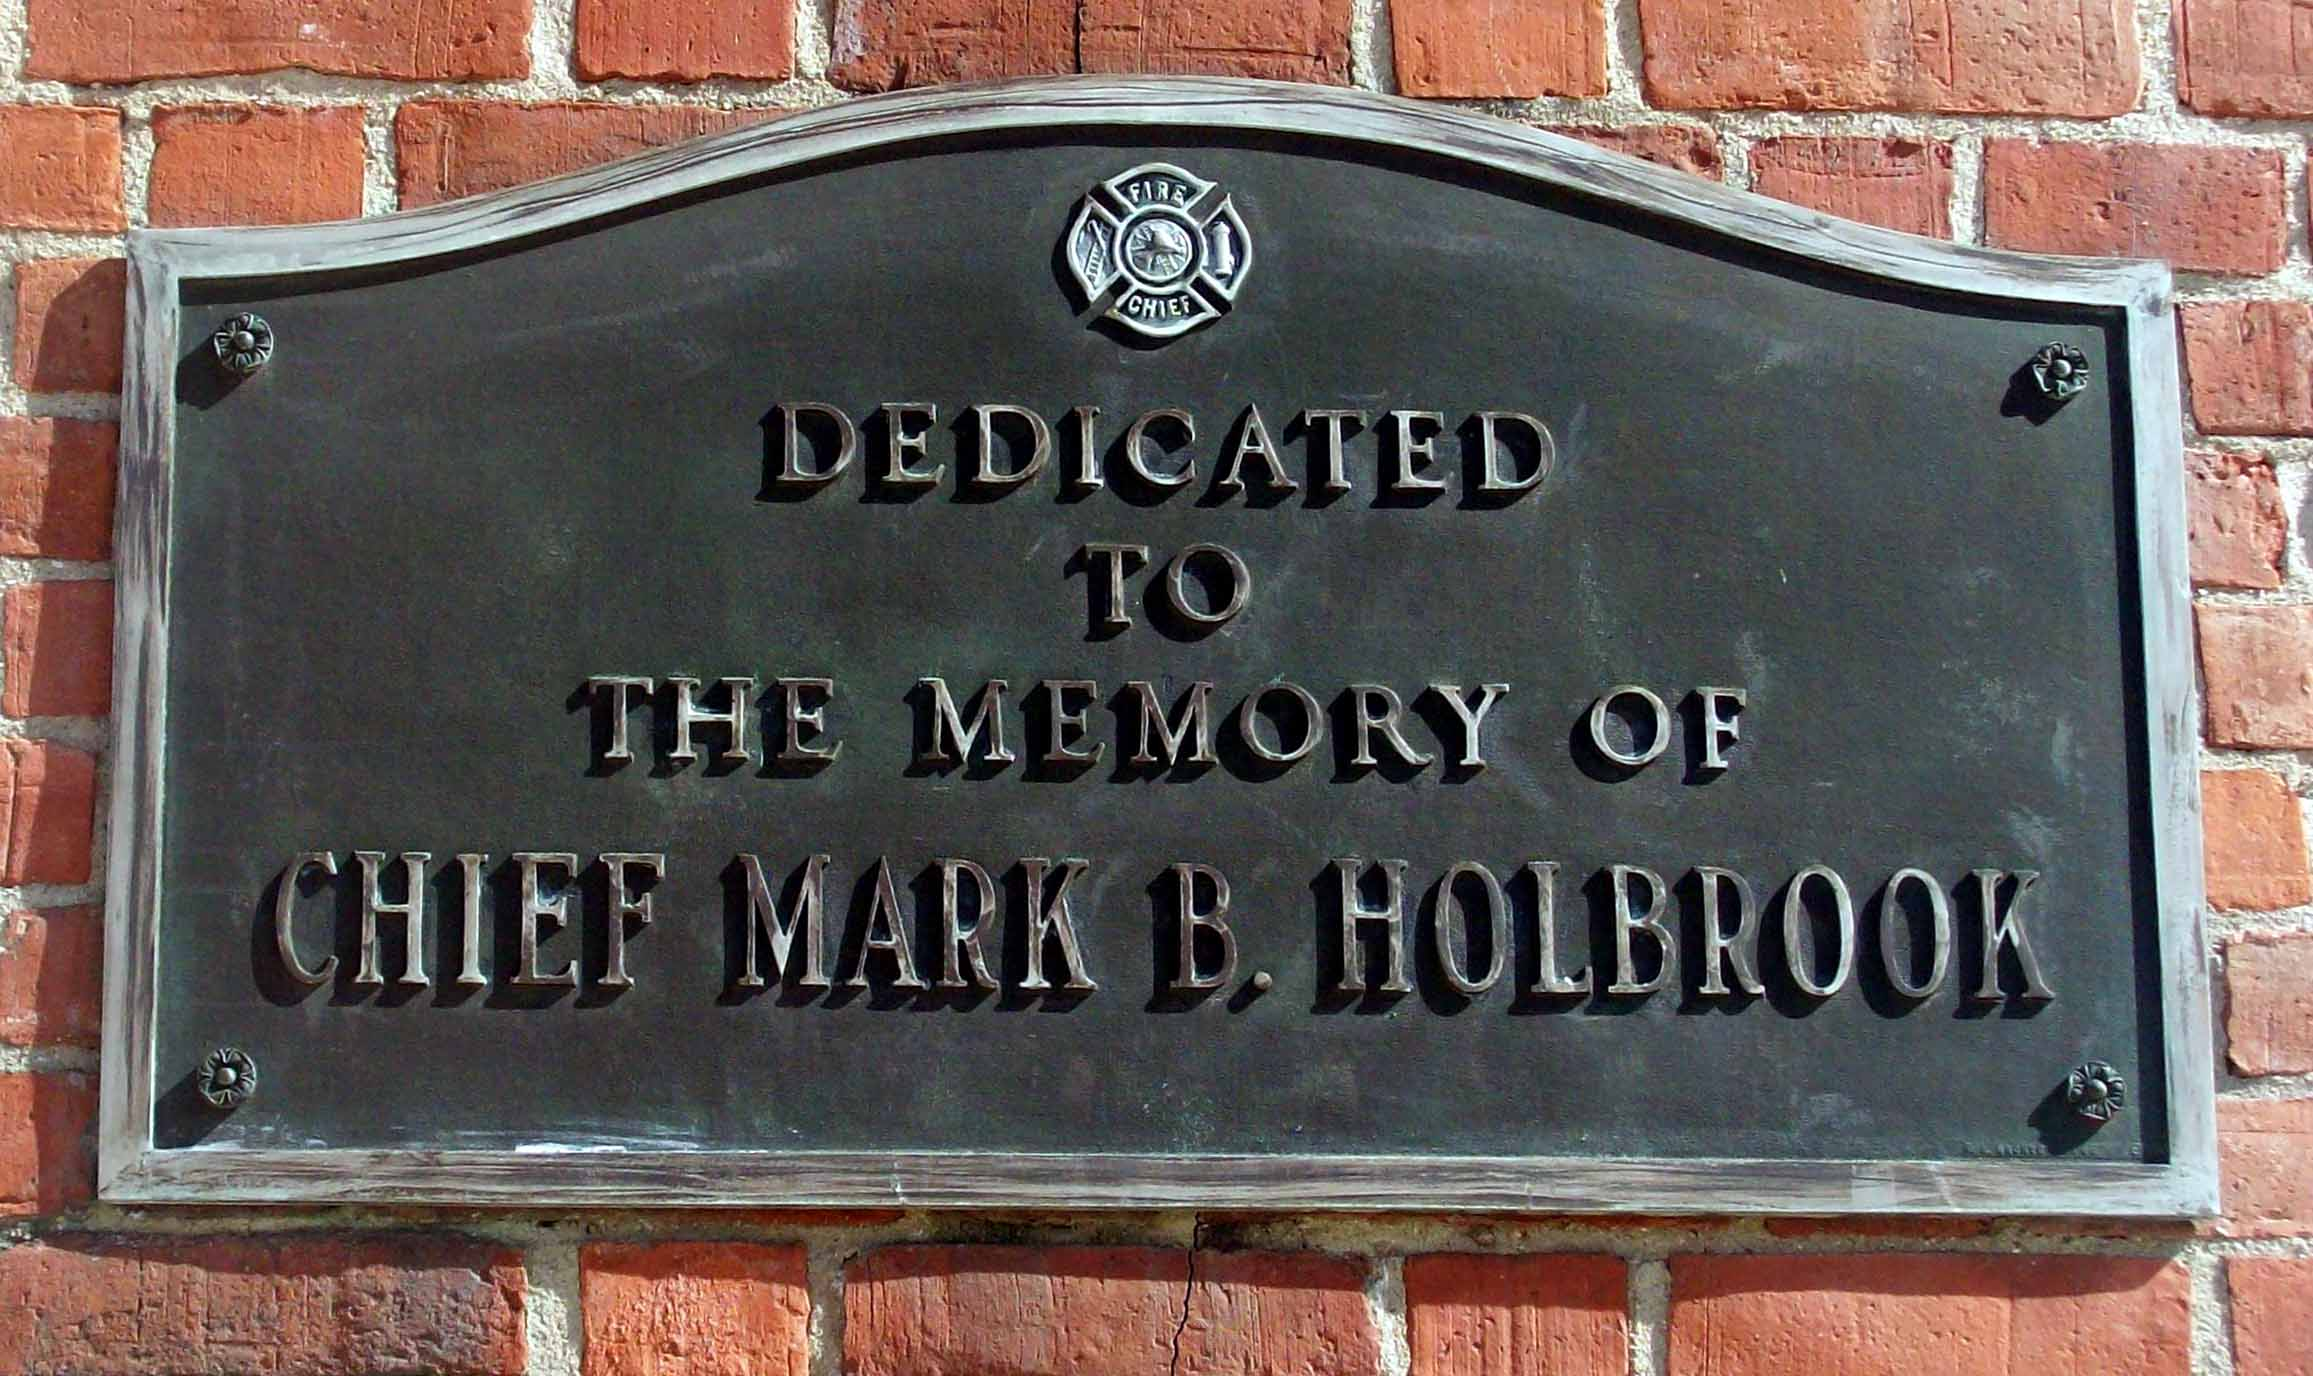 Dedicated to the memory Chief Mark B. Holbrook